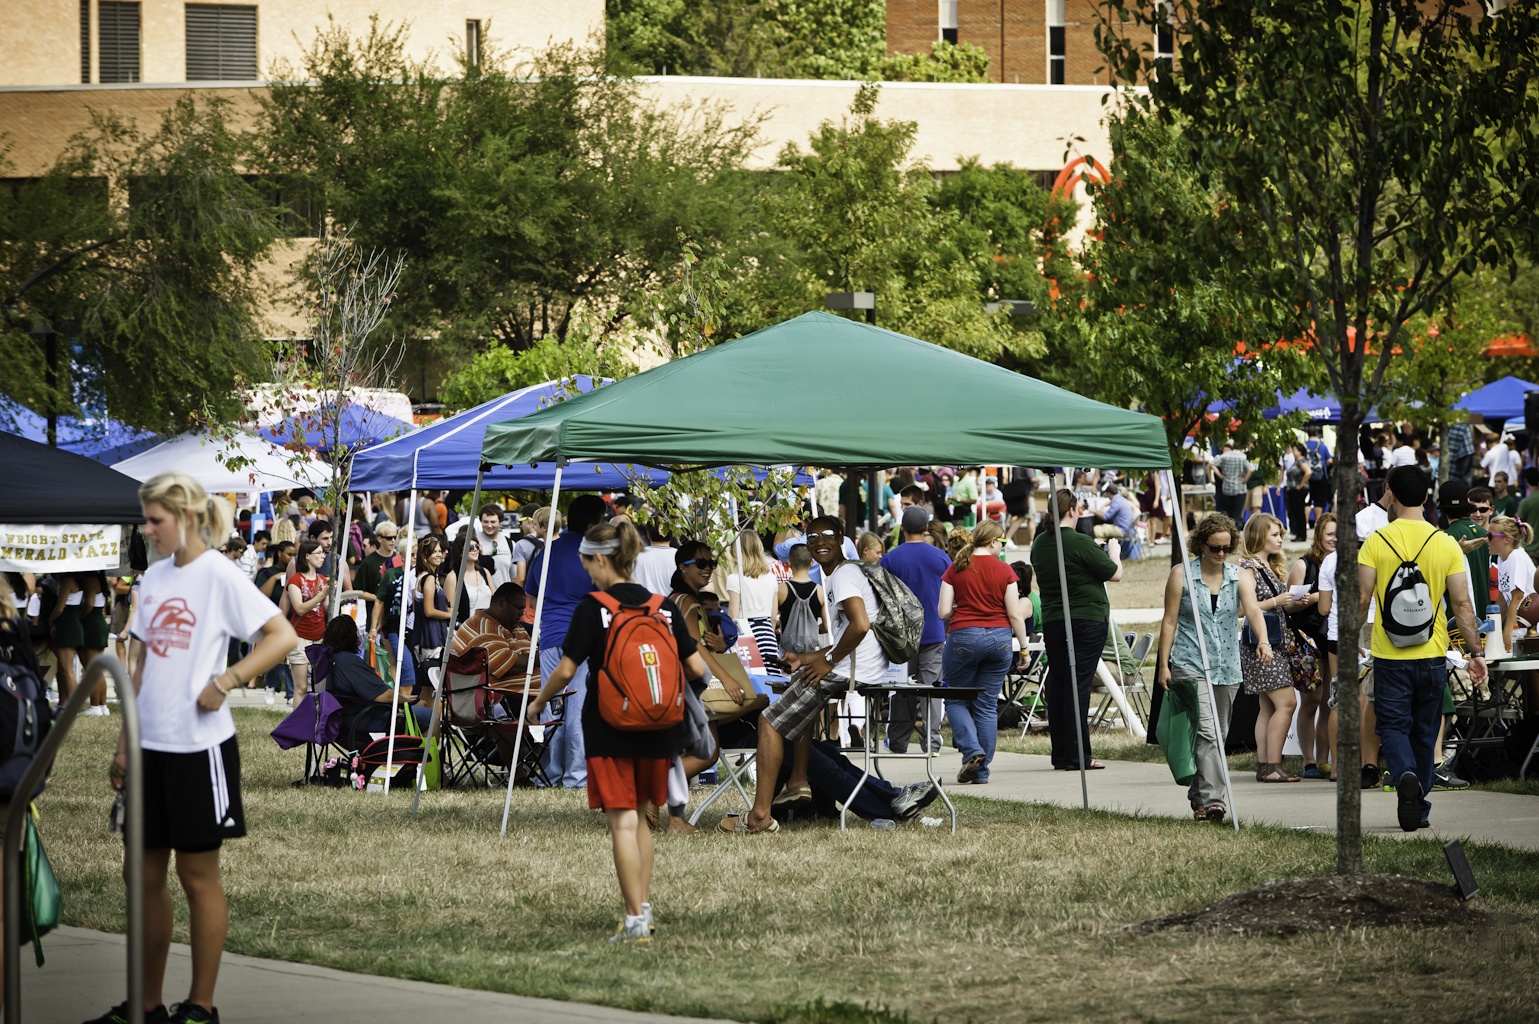 Students, staff, and faculty enjoyed food, fun, and friends at the annual Wright State Fall Fest. Student organizations, multiple departments, and various vendors participated in the Aug. 31 event.